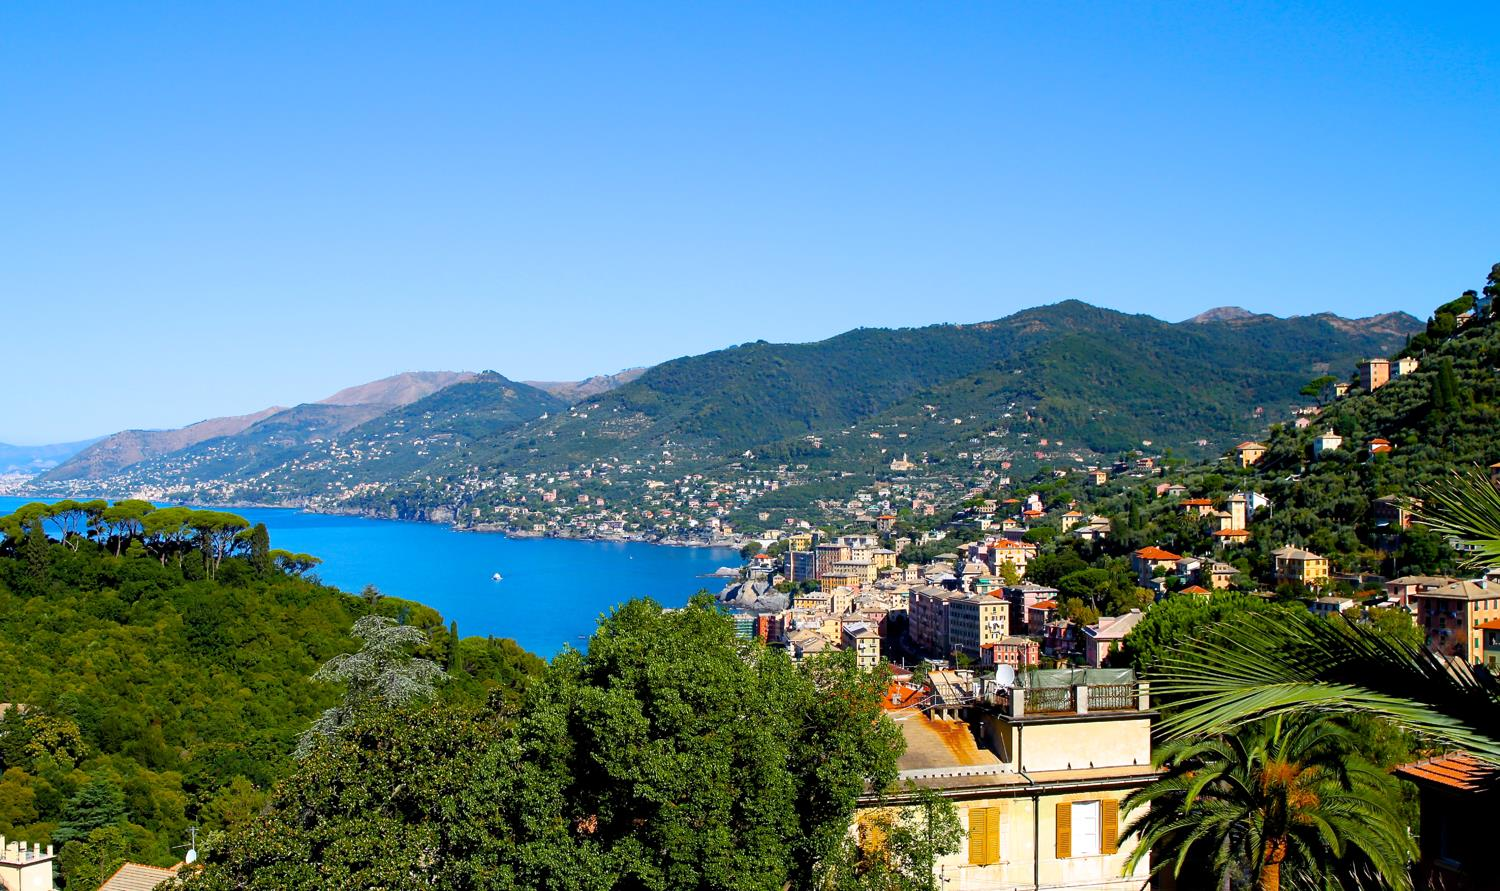 Good morning! First morning on the Italian Riviera. Not too shabby!